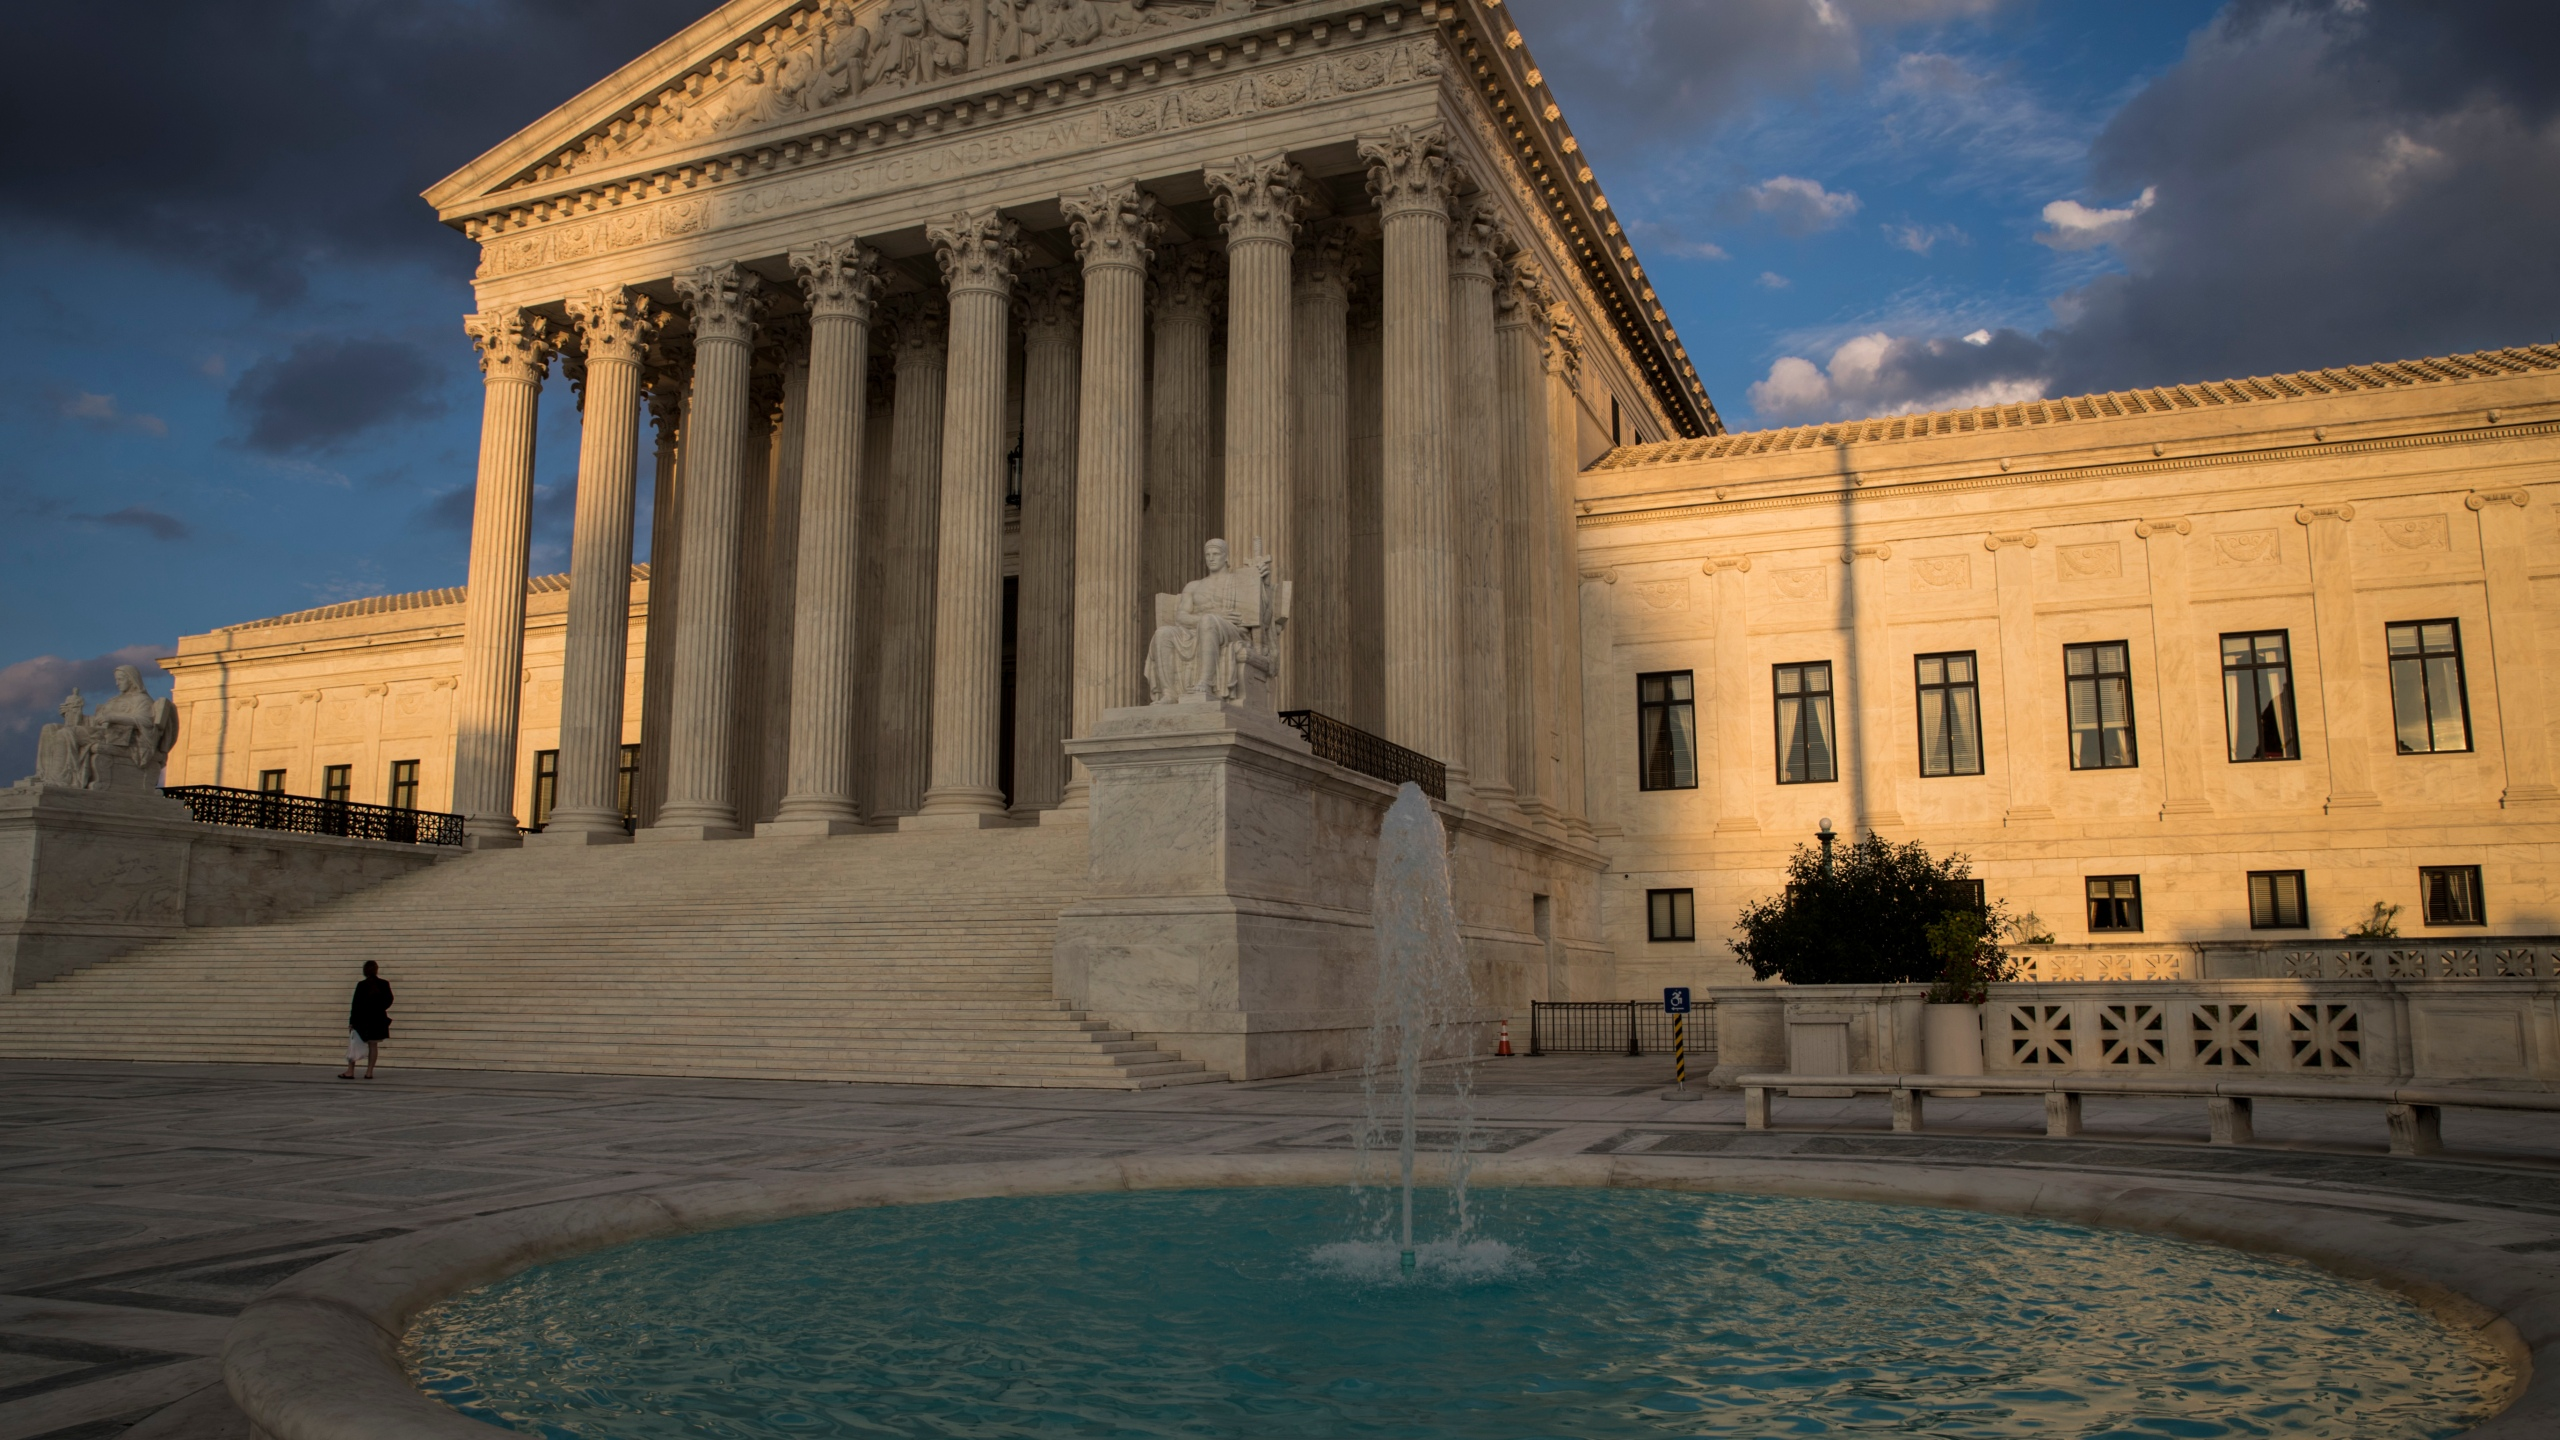 Supreme_Court_Cellphone_Tracking_83987-159532.jpg81611680